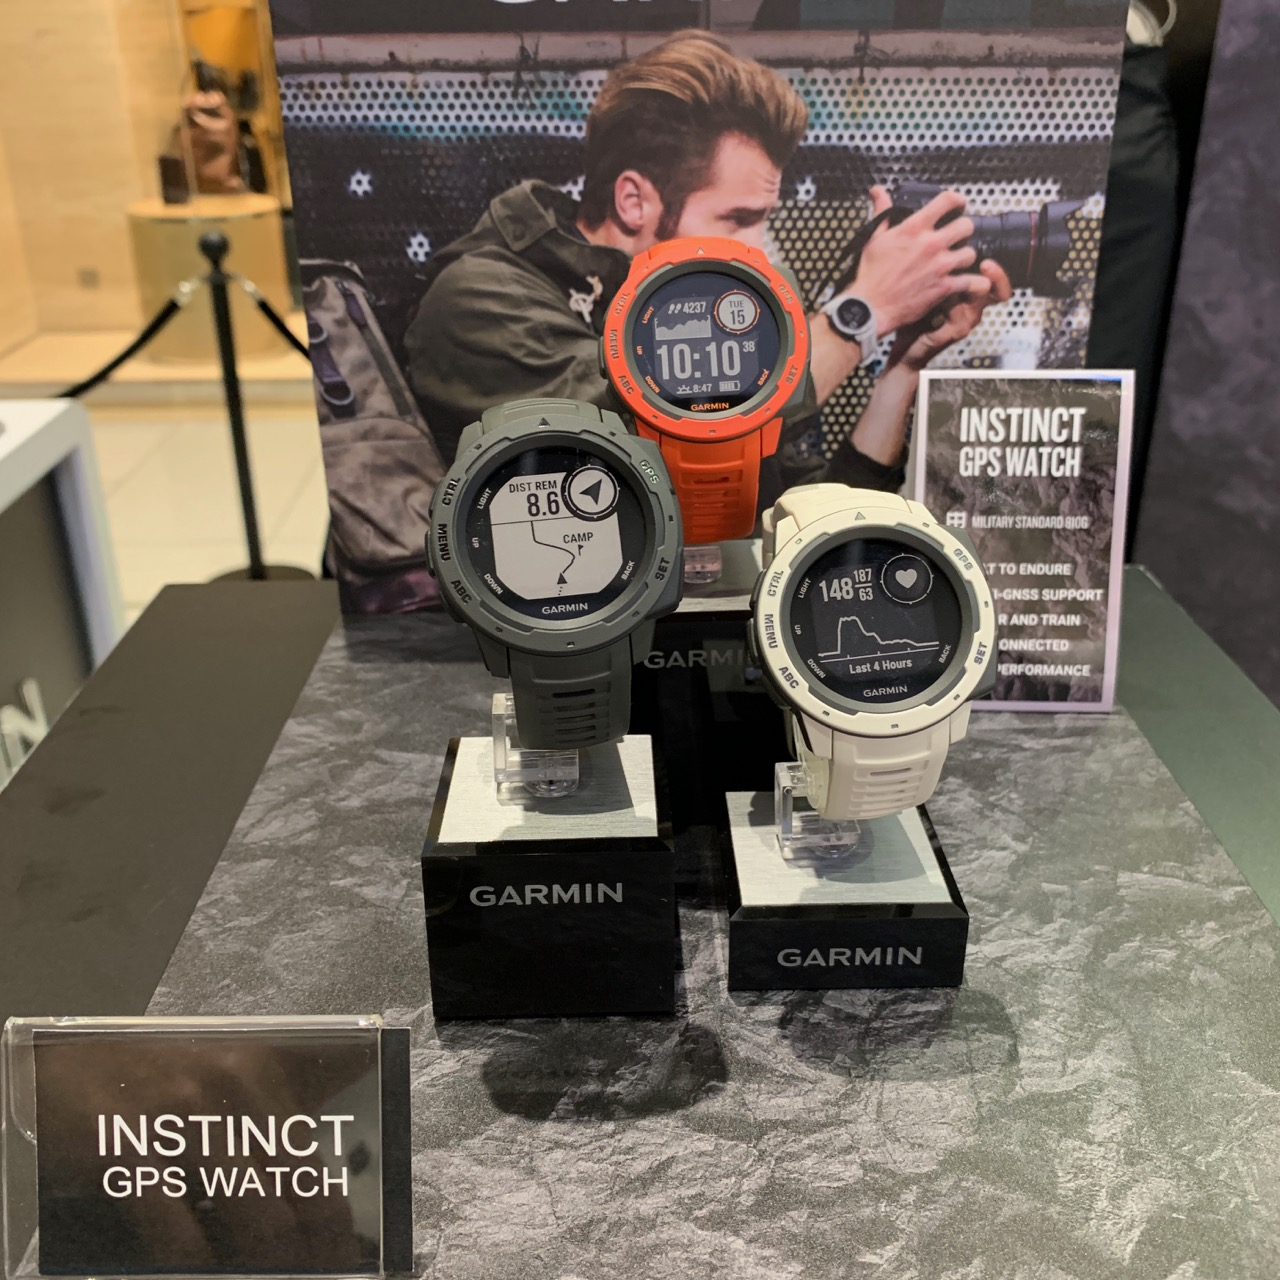 All new product line with Garmin Instinct - truly a GPS